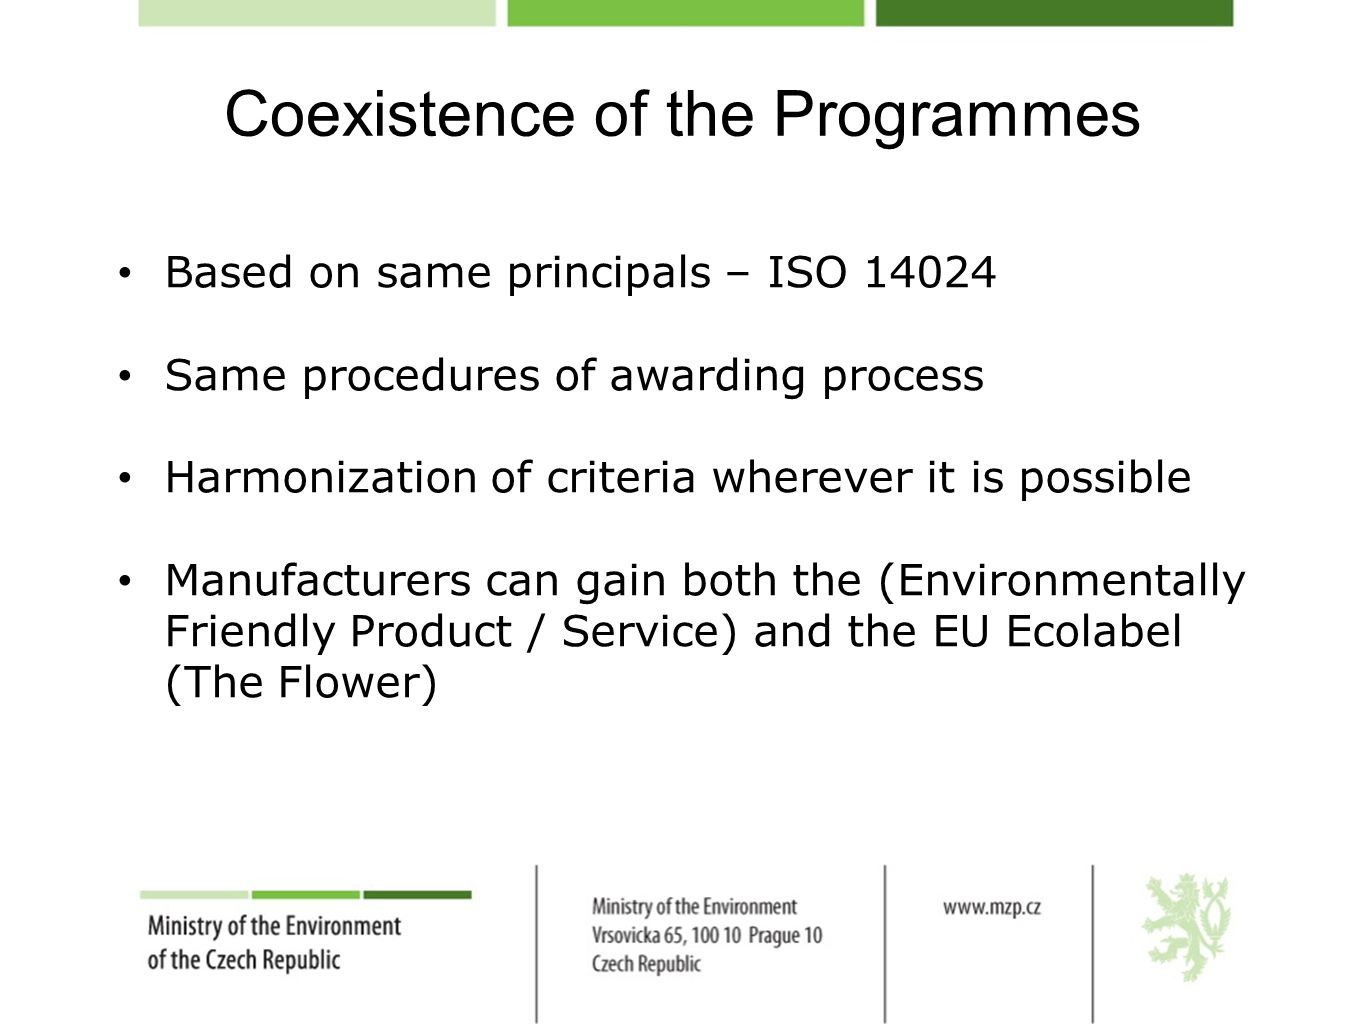 Coexistence of the Programmes Based on same principals – ISO 14024 Same procedures of awarding process Harmonization of criteria wherever it is possible Manufacturers can gain both the (Environmentally Friendly Product / Service) and the EU Ecolabel (The Flower)